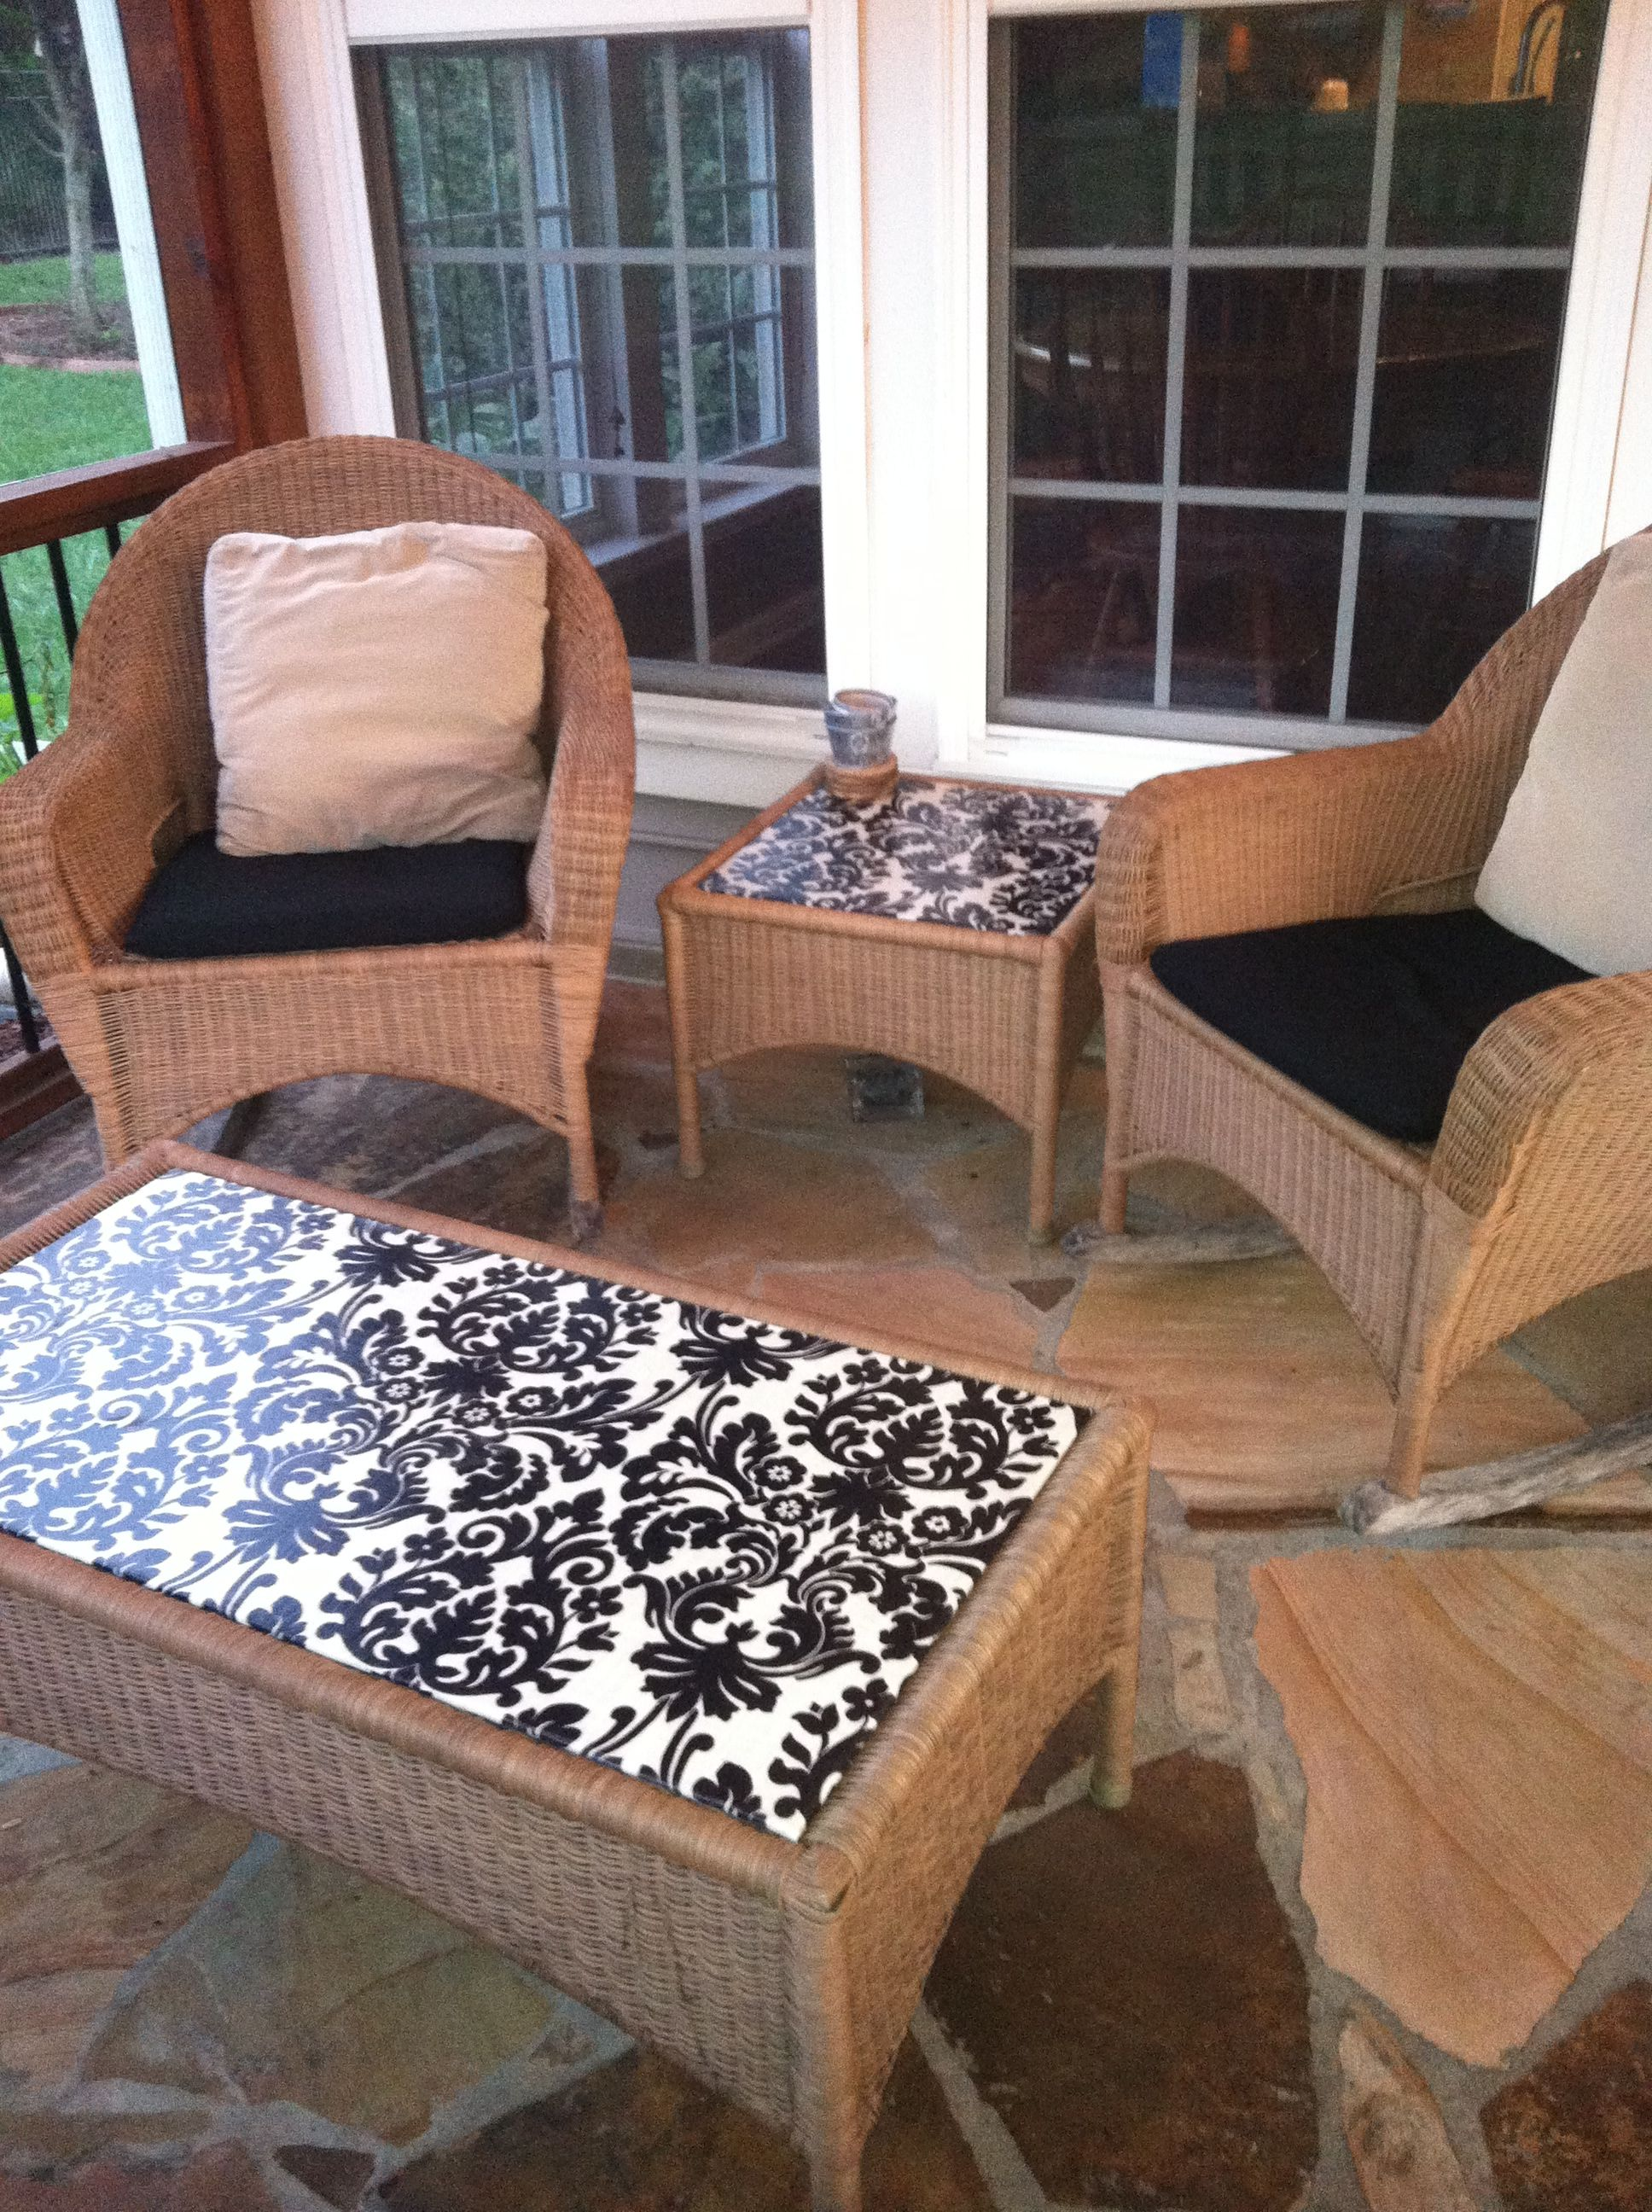 Pin By Sarah Brooks On Diy Furniture Makeover Painted Table Furniture Finishes [ 2592 x 1936 Pixel ]